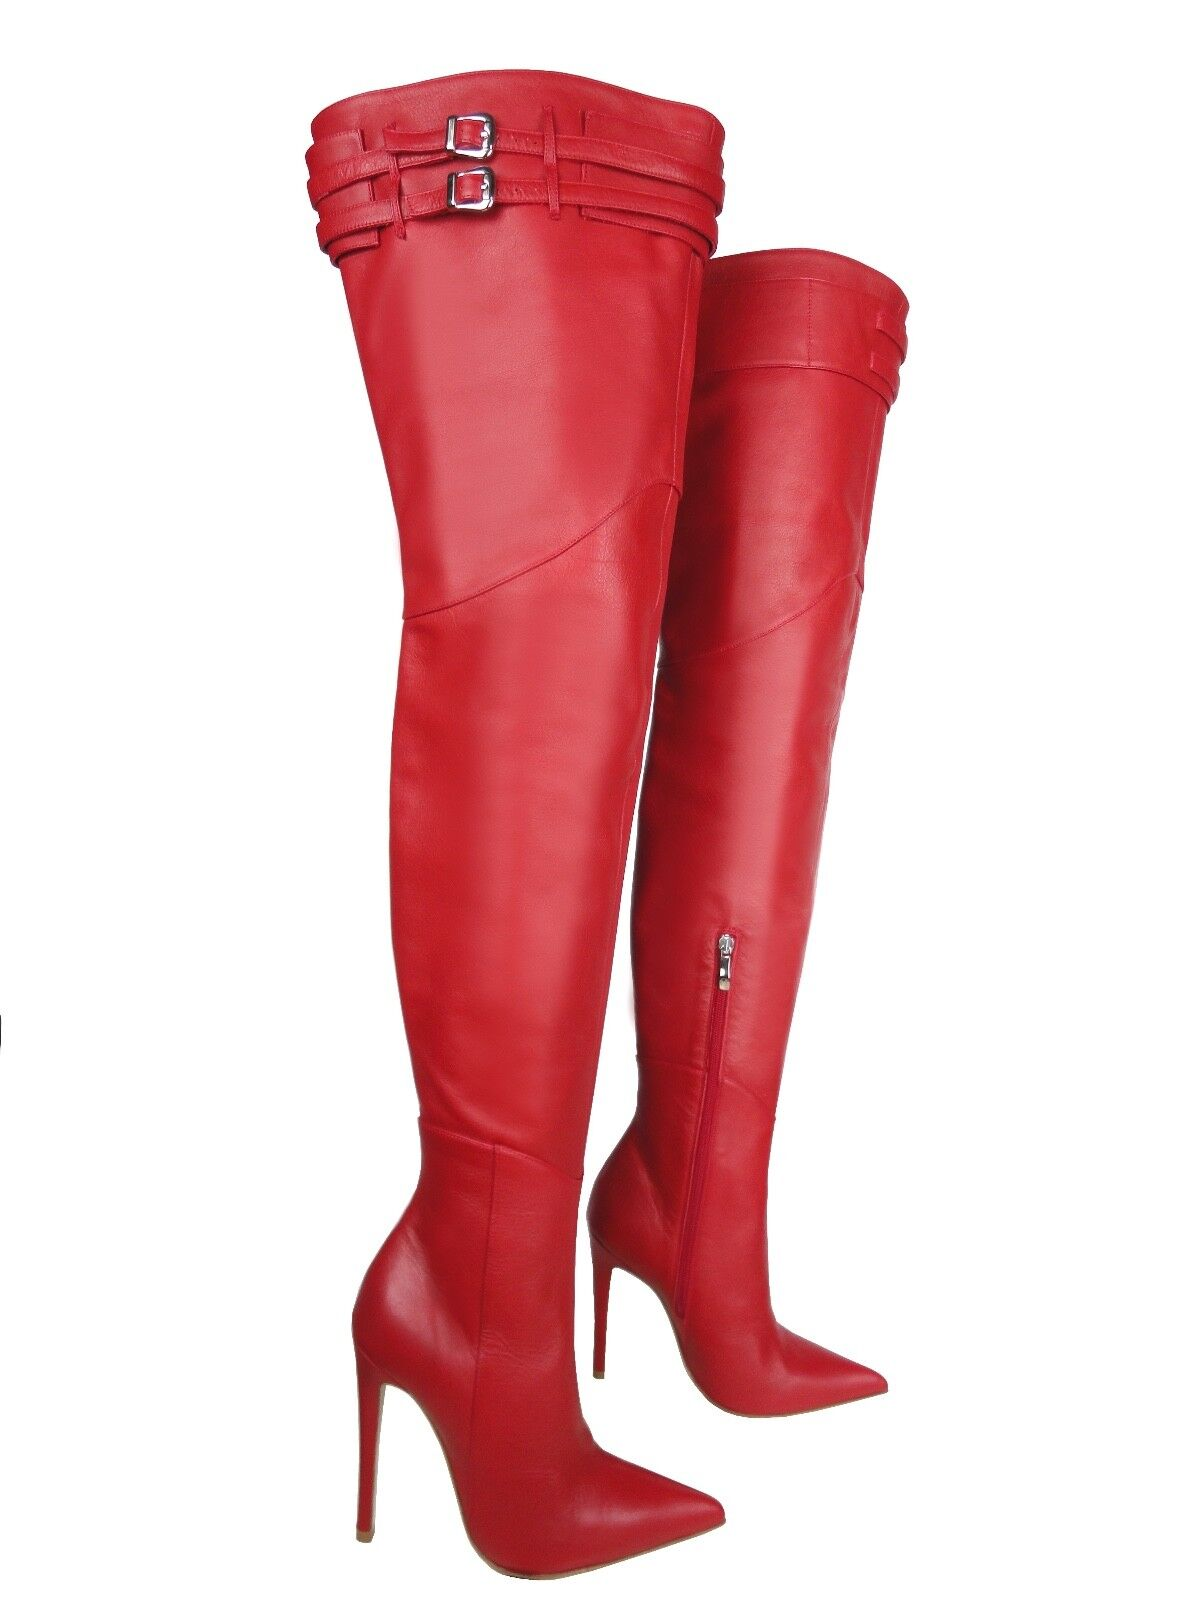 CQ COUTURE CUSTOM HEELS OVERKNEE BOOTS STIEFEL STIVALI LEATHER BELT RED ROSSO 44